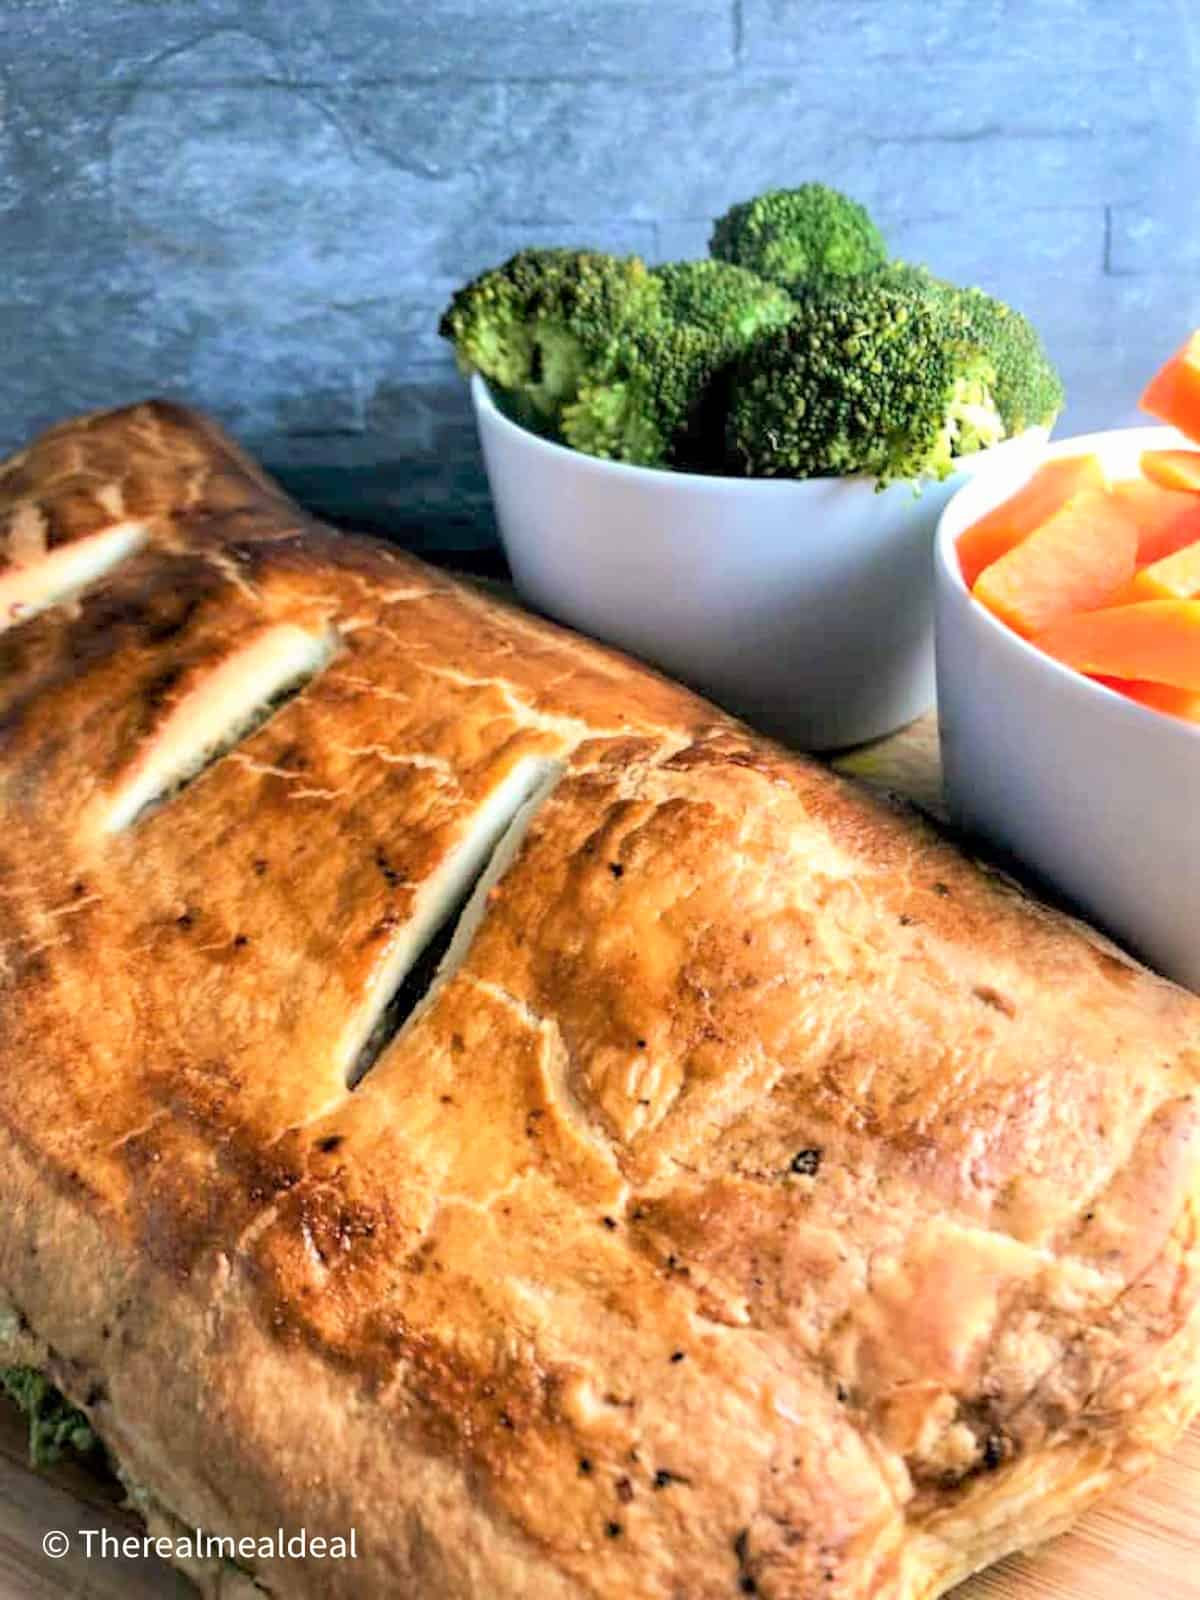 salmon en croute large parcel cooked with broccoli and carrots side dish